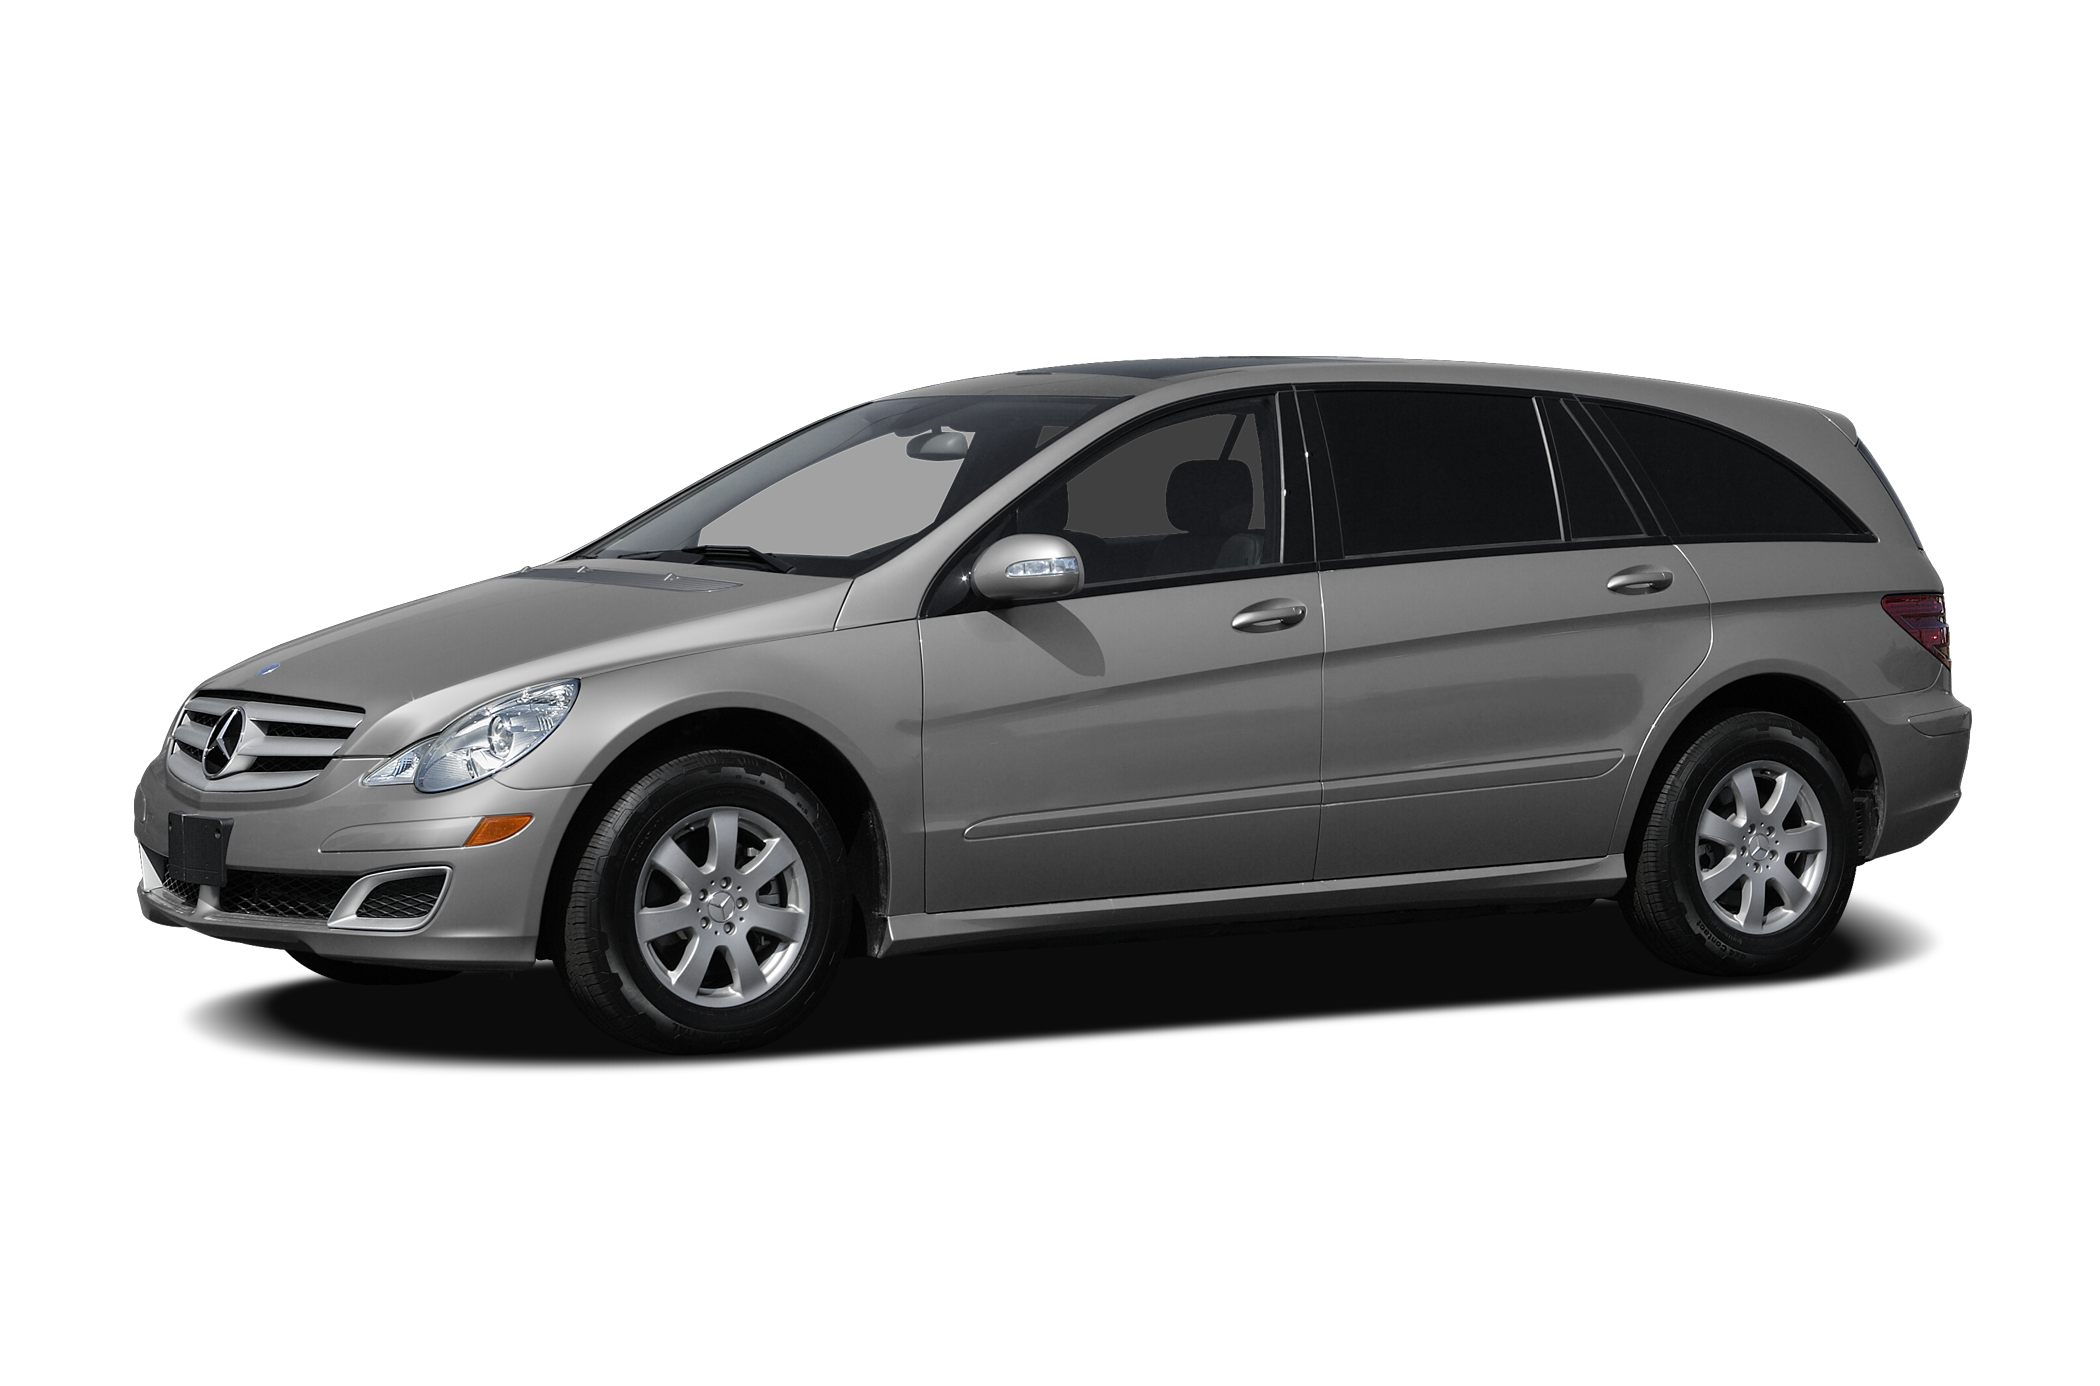 2006 Mercedes-Benz R-Class R350 4MATIC Wagon for sale in Jersey City for $8,900 with 114,145 miles.